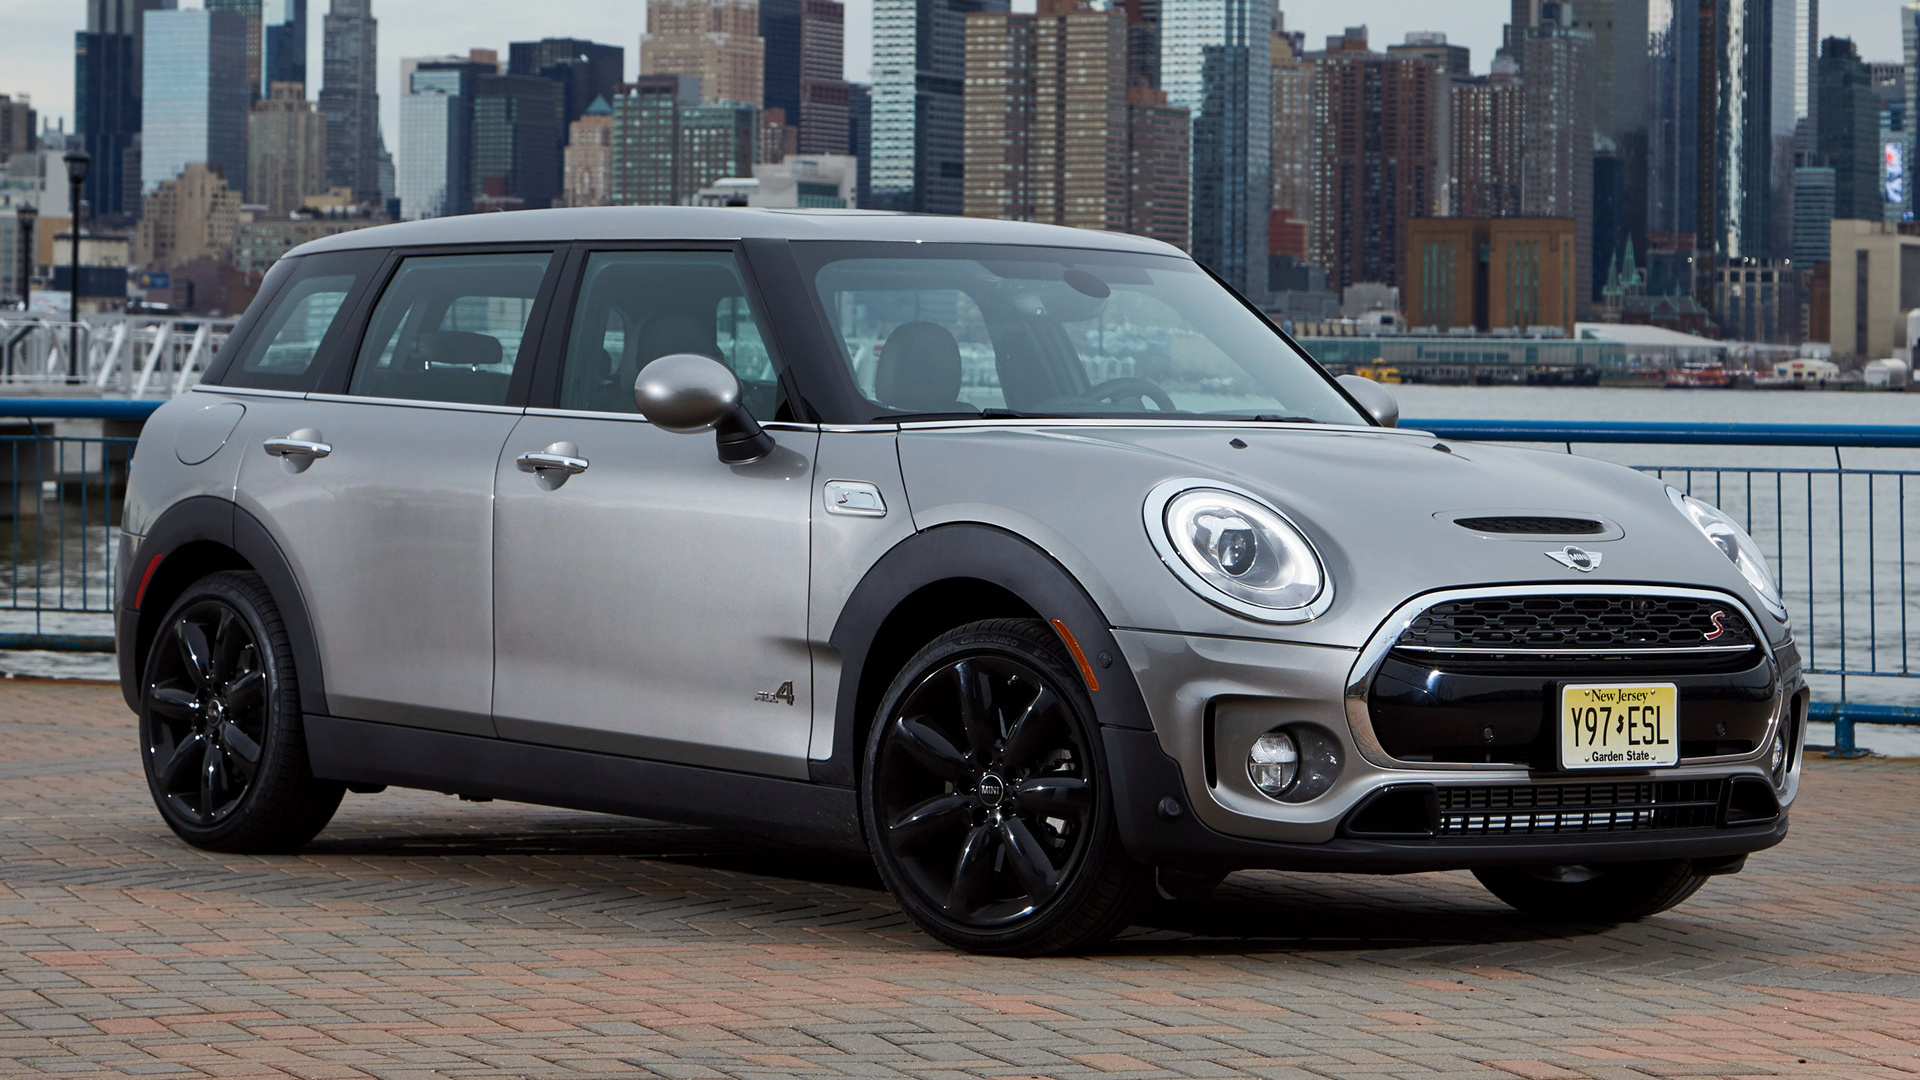 Mini Cooper S Clubman (2017) US Wallpapers and HD Images - Car Pixel